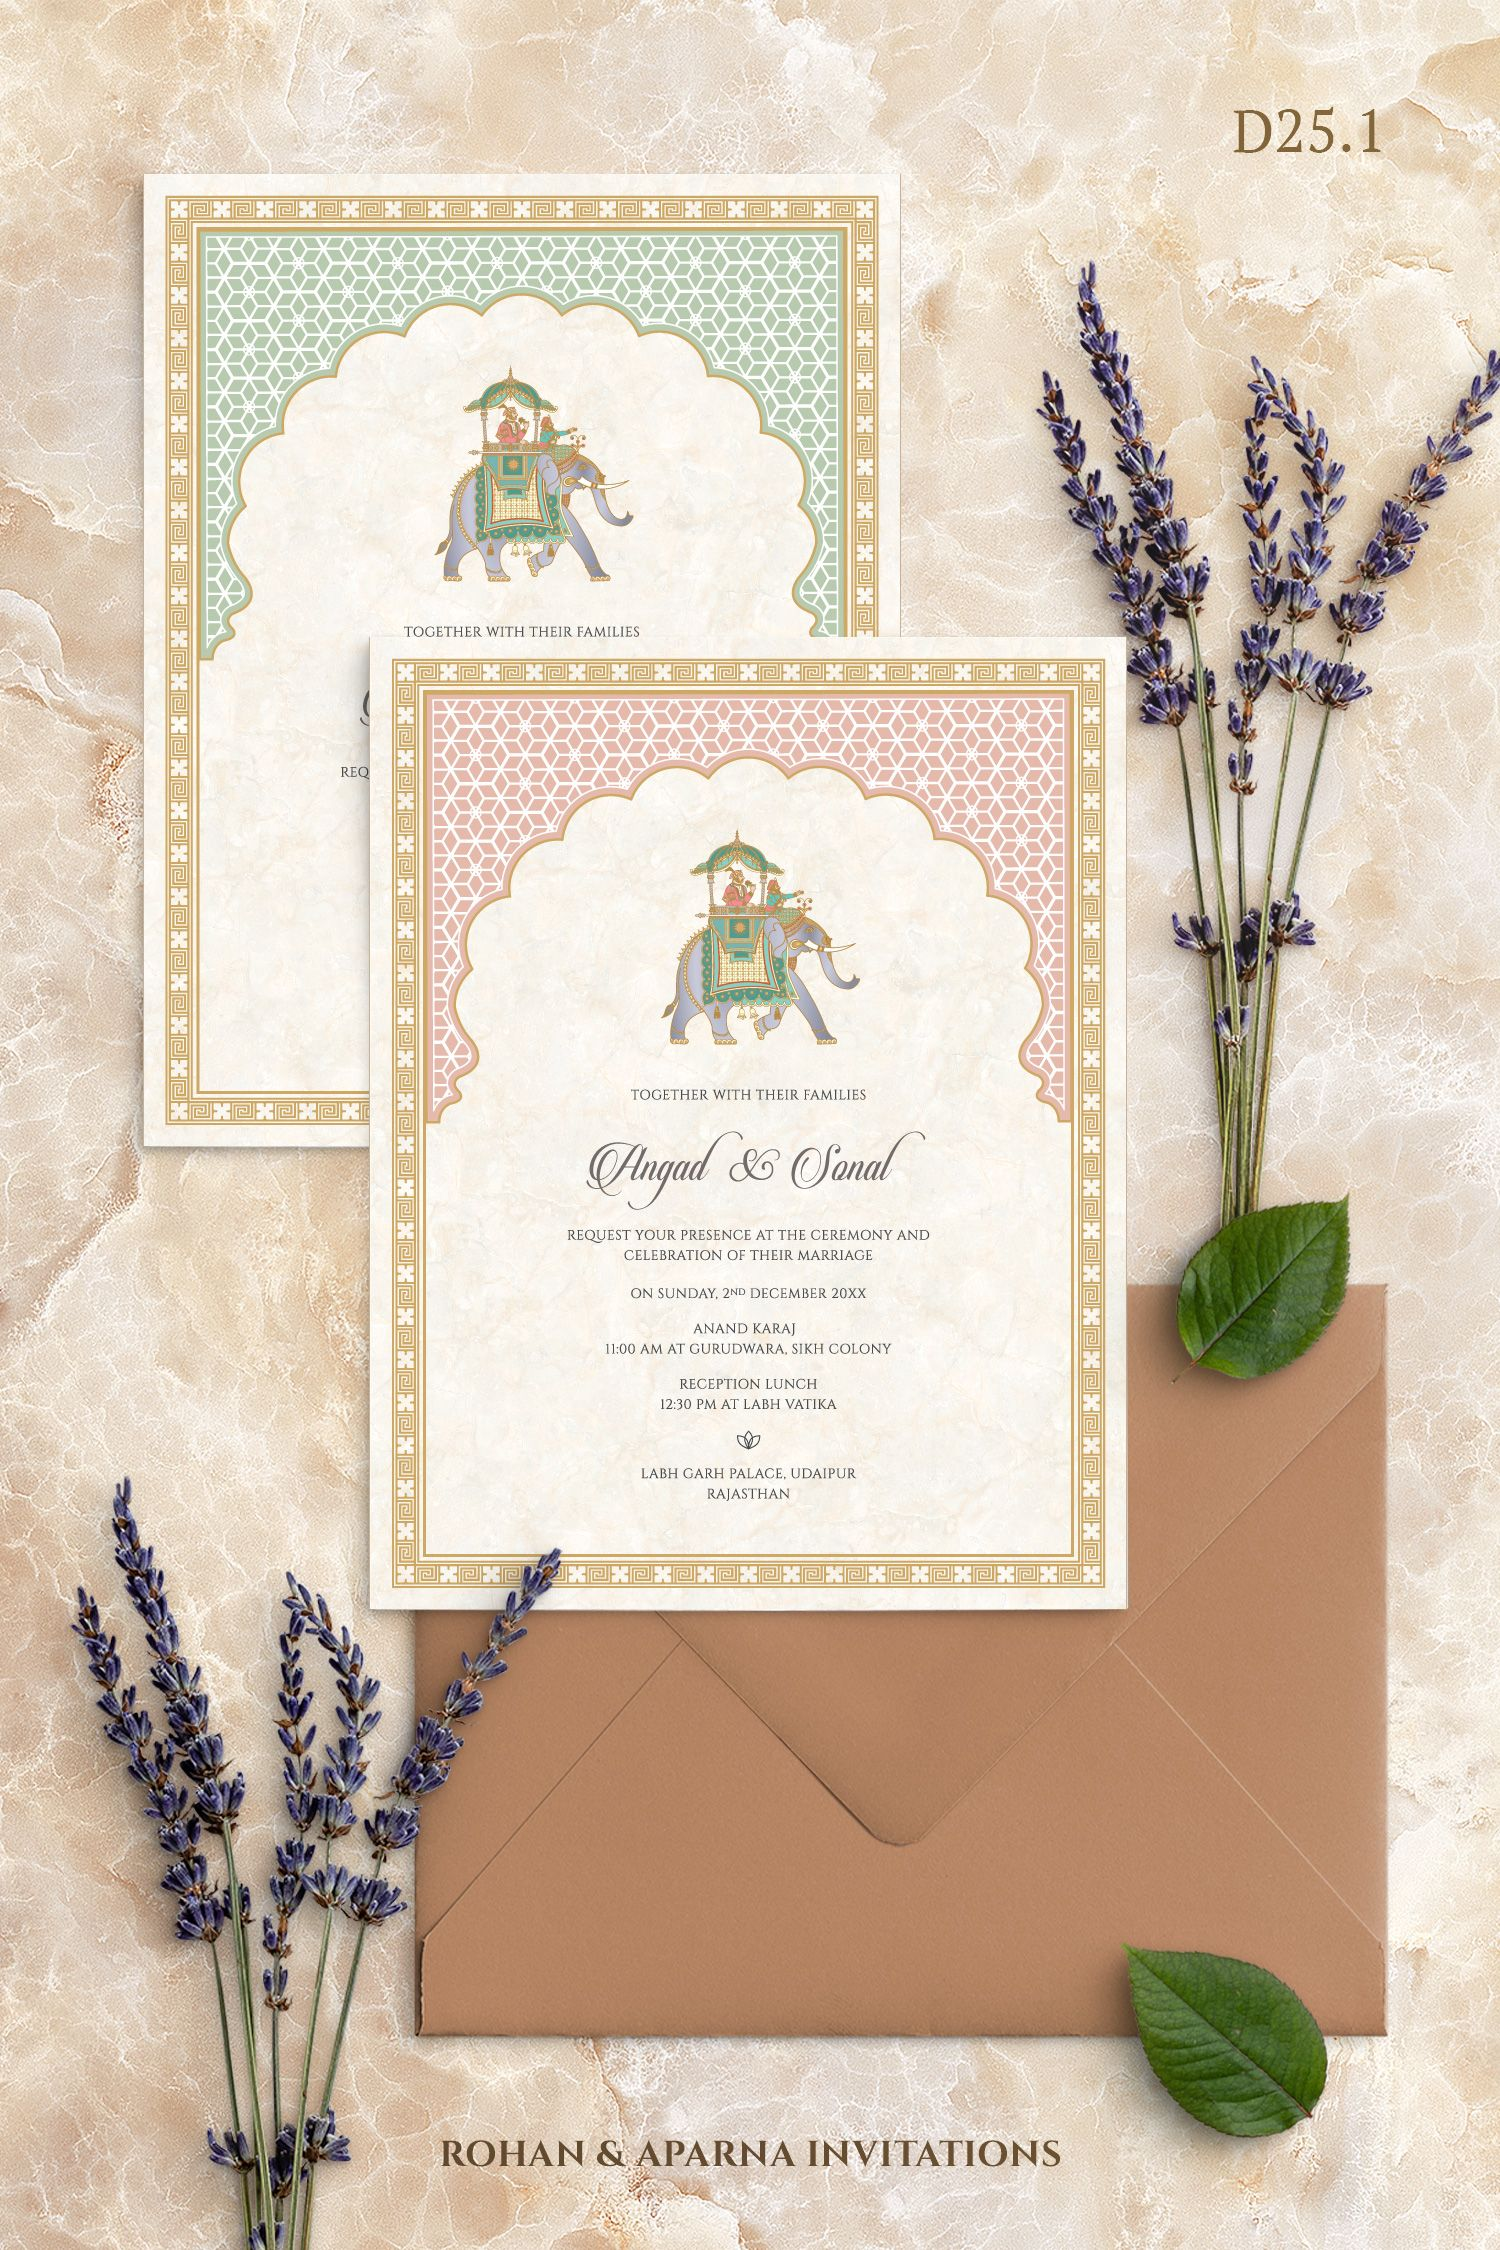 Pastel Arches Themed Wedding Invitation Concept With An Elephant Mot Indian Wedding Invitation Cards Hindu Wedding Invitation Cards Elephant Wedding Invitation